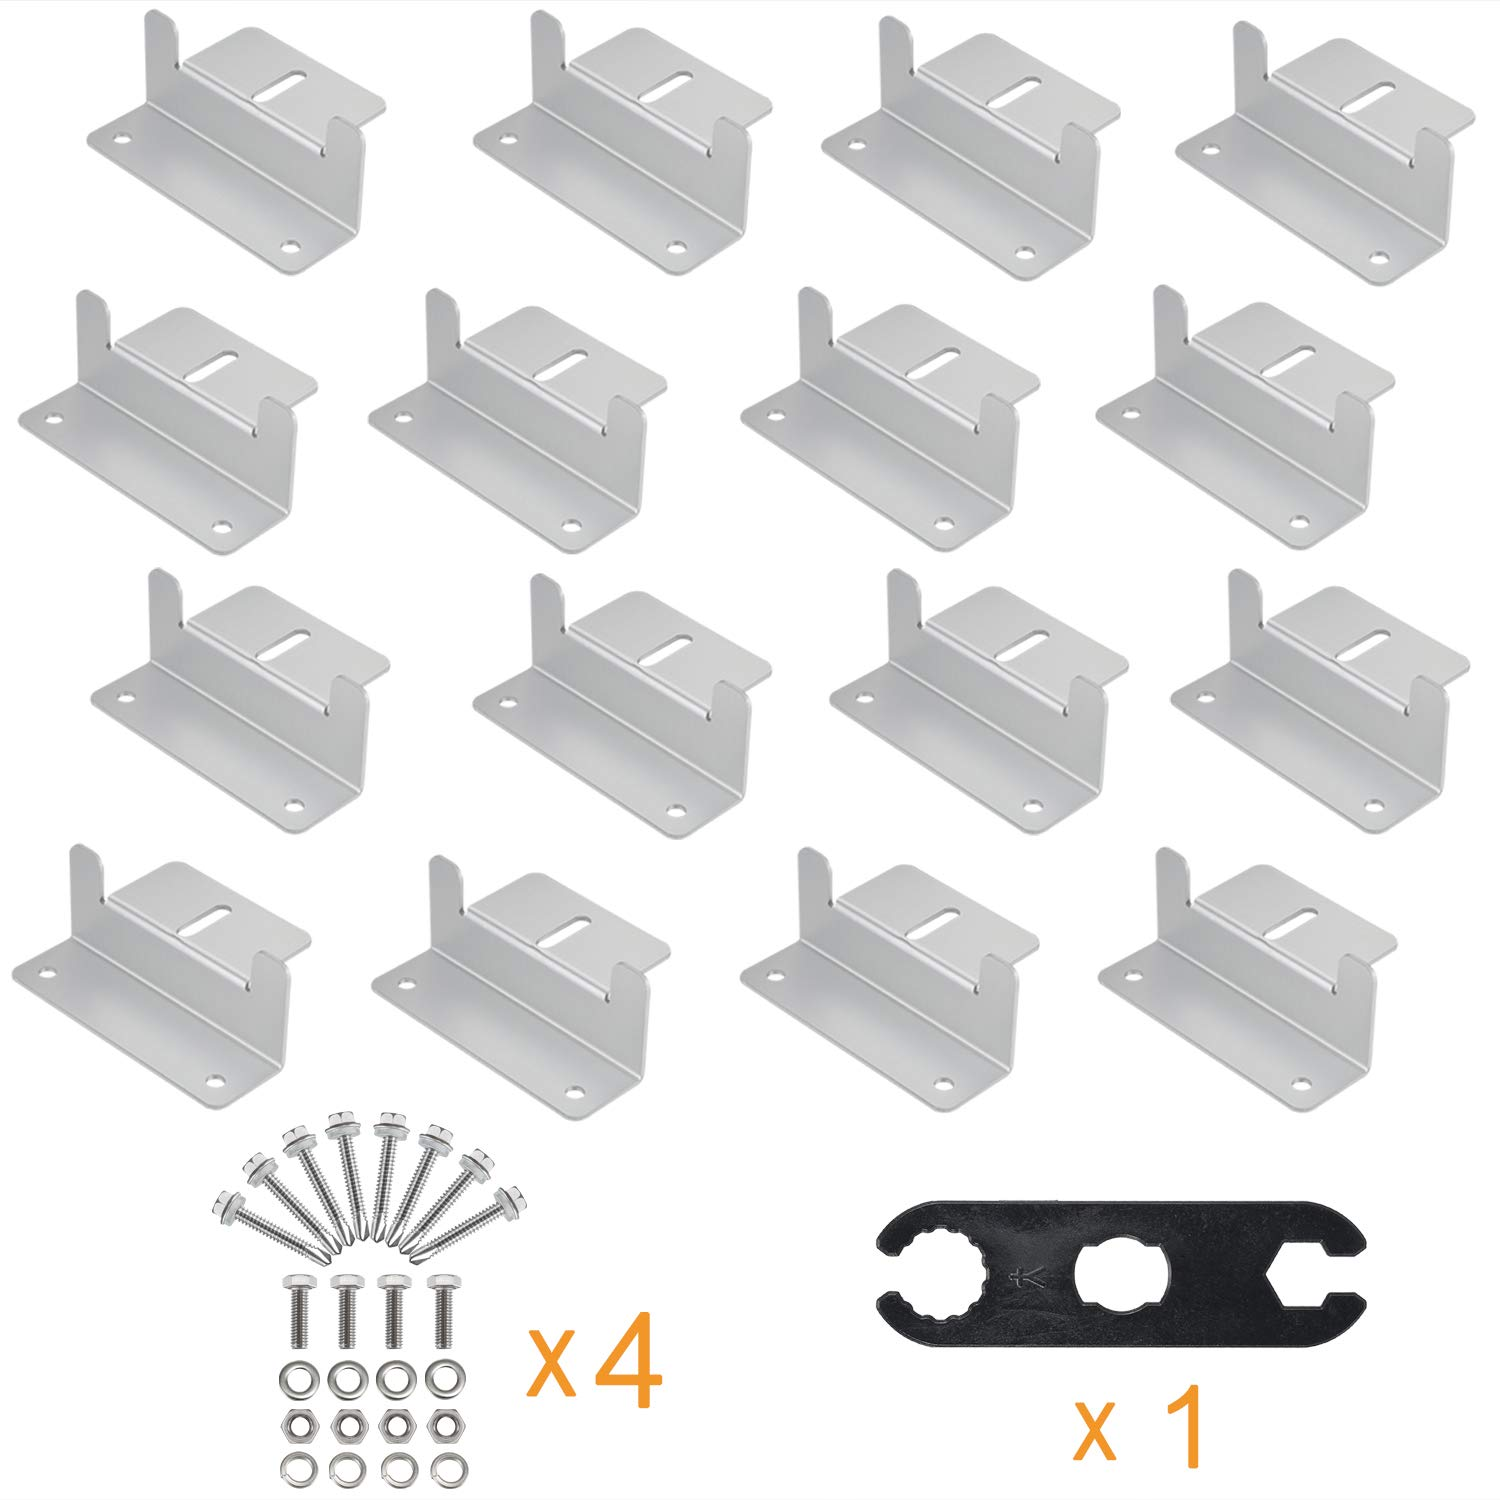 AOOHOOA Solar Panel Mounting Z Brackets Kit with Nuts and Bolts for RV Camper,Boat,Wall and Other Off Gird Roof Installation,A Set of 4 Units (4 Set)